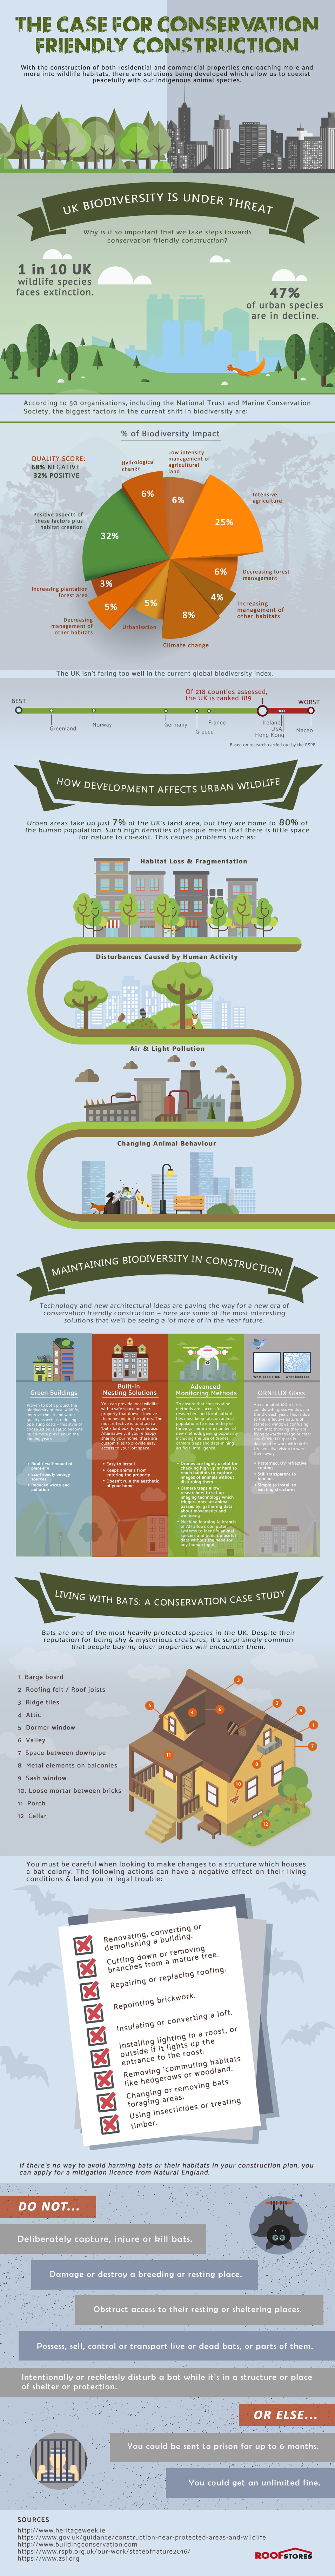 Conservation Friendly Construction [Infographic]